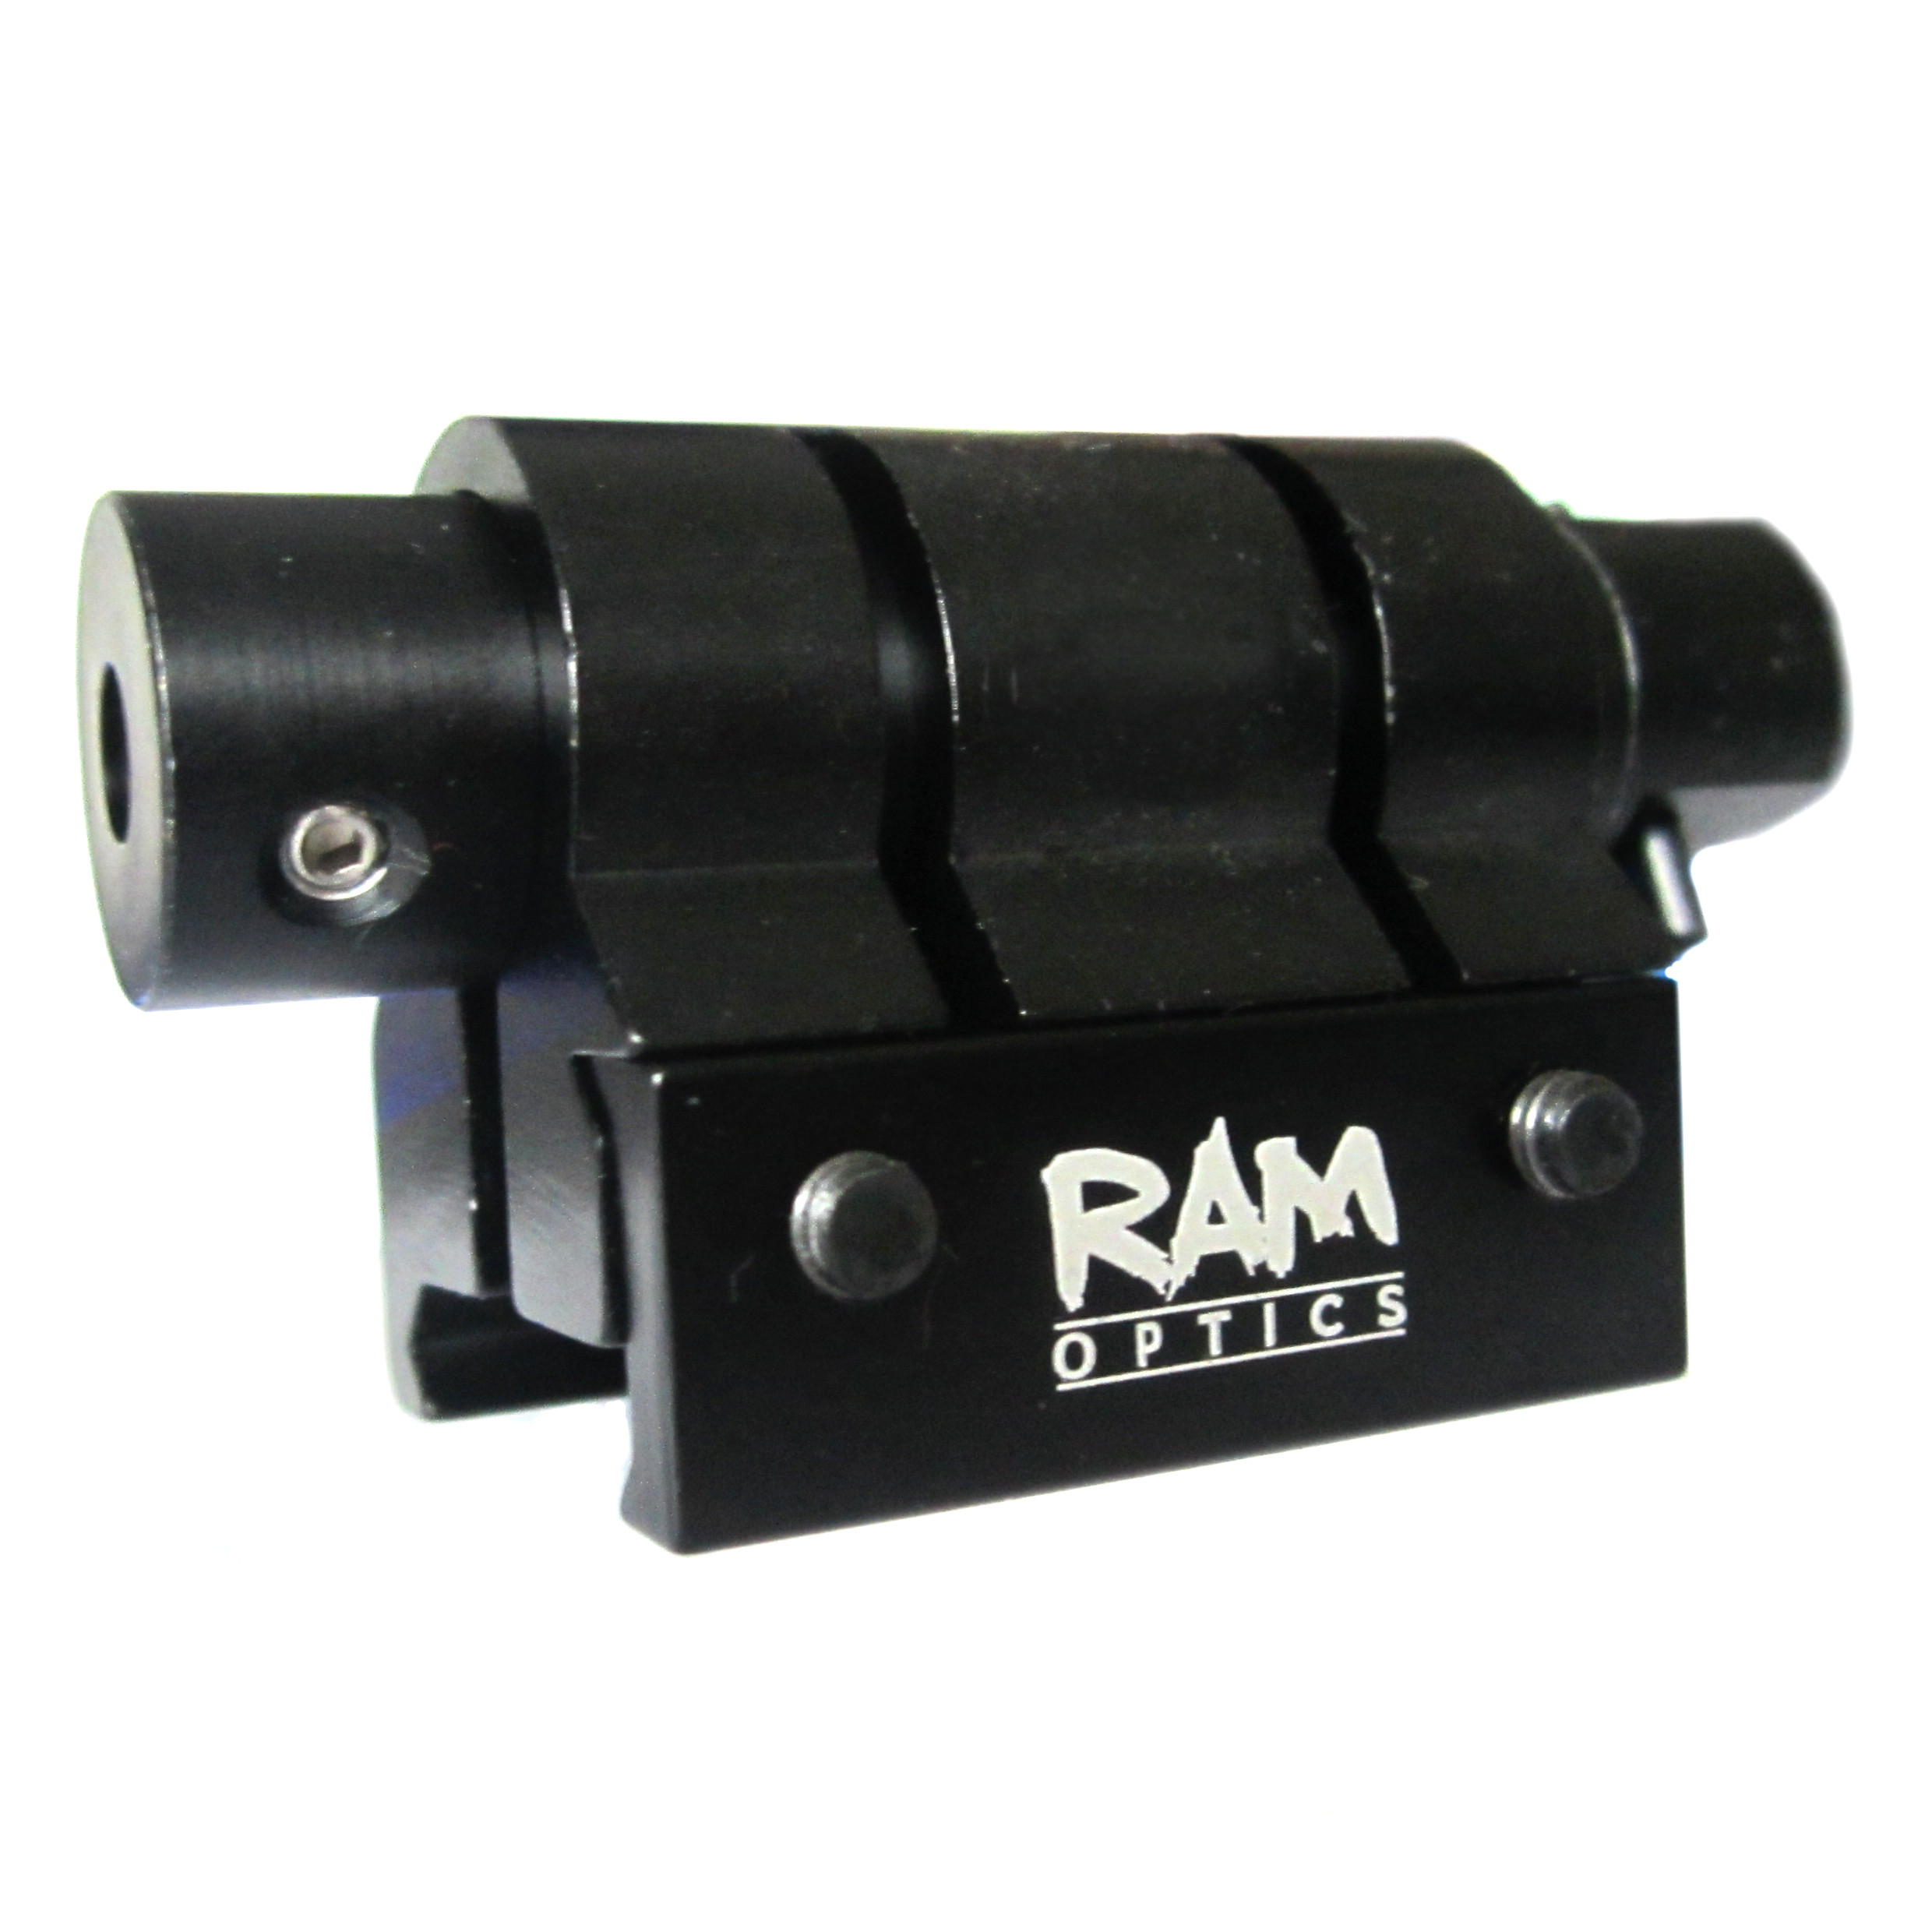 Tactical red laser - Ram